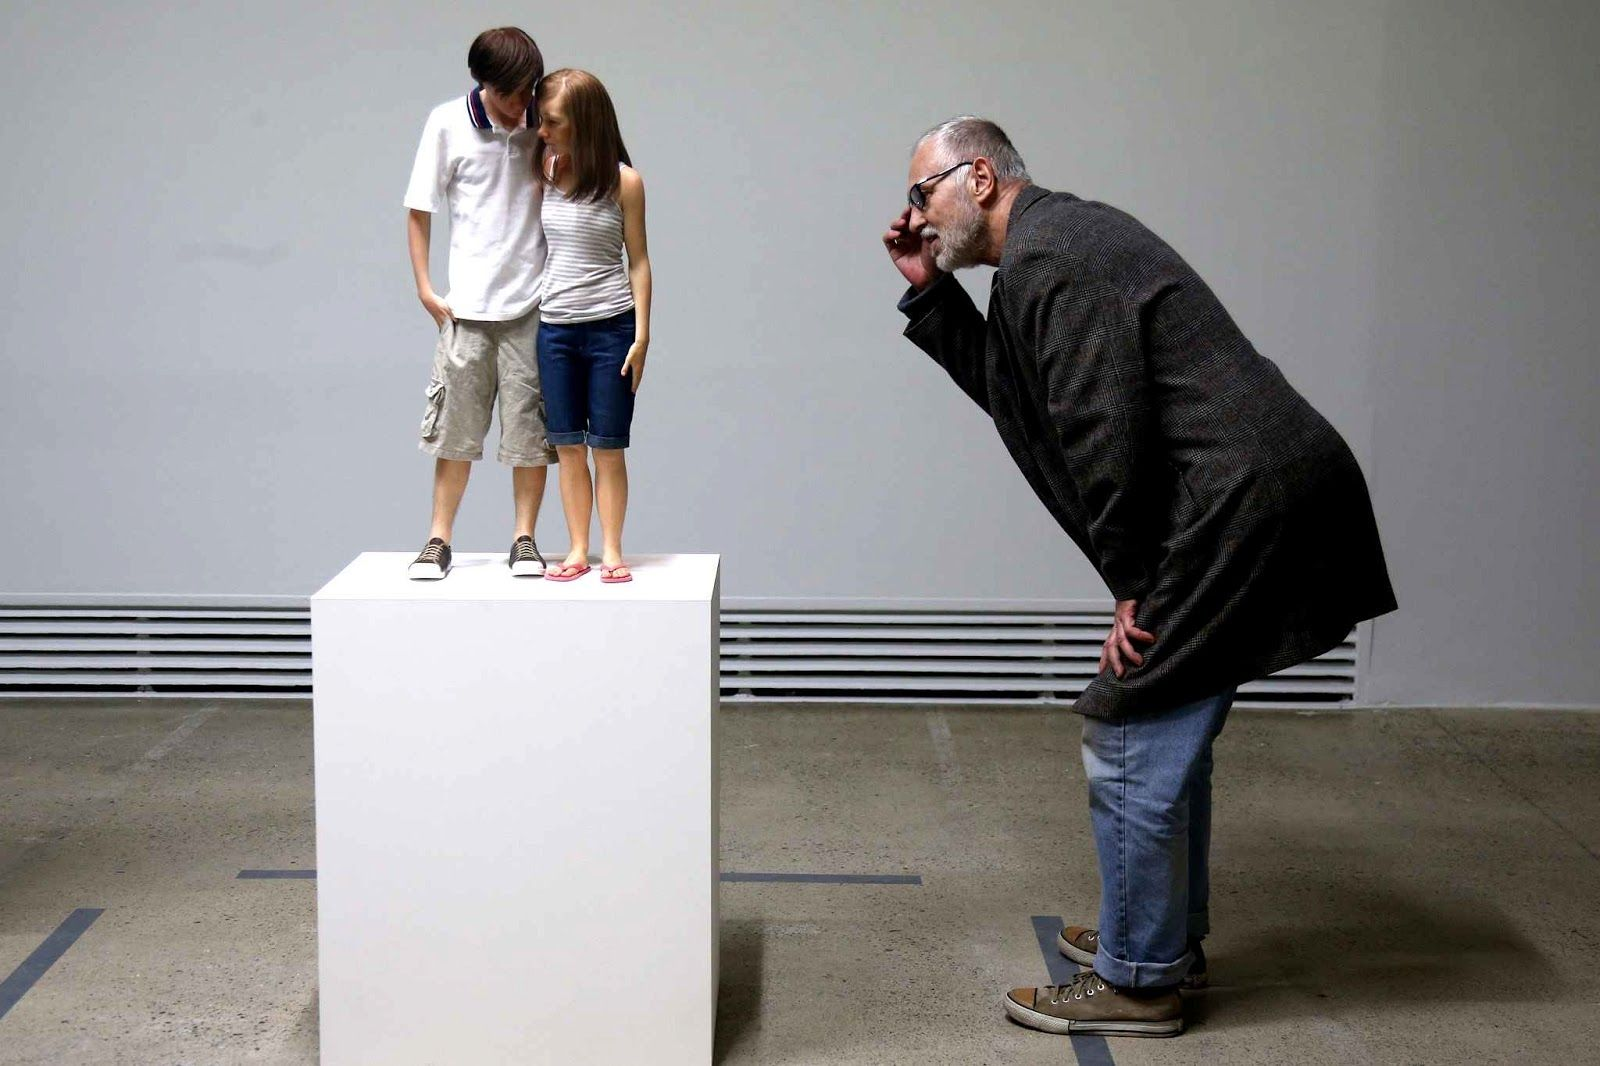 realistic sculputre by ron mueck 27 - Full Image